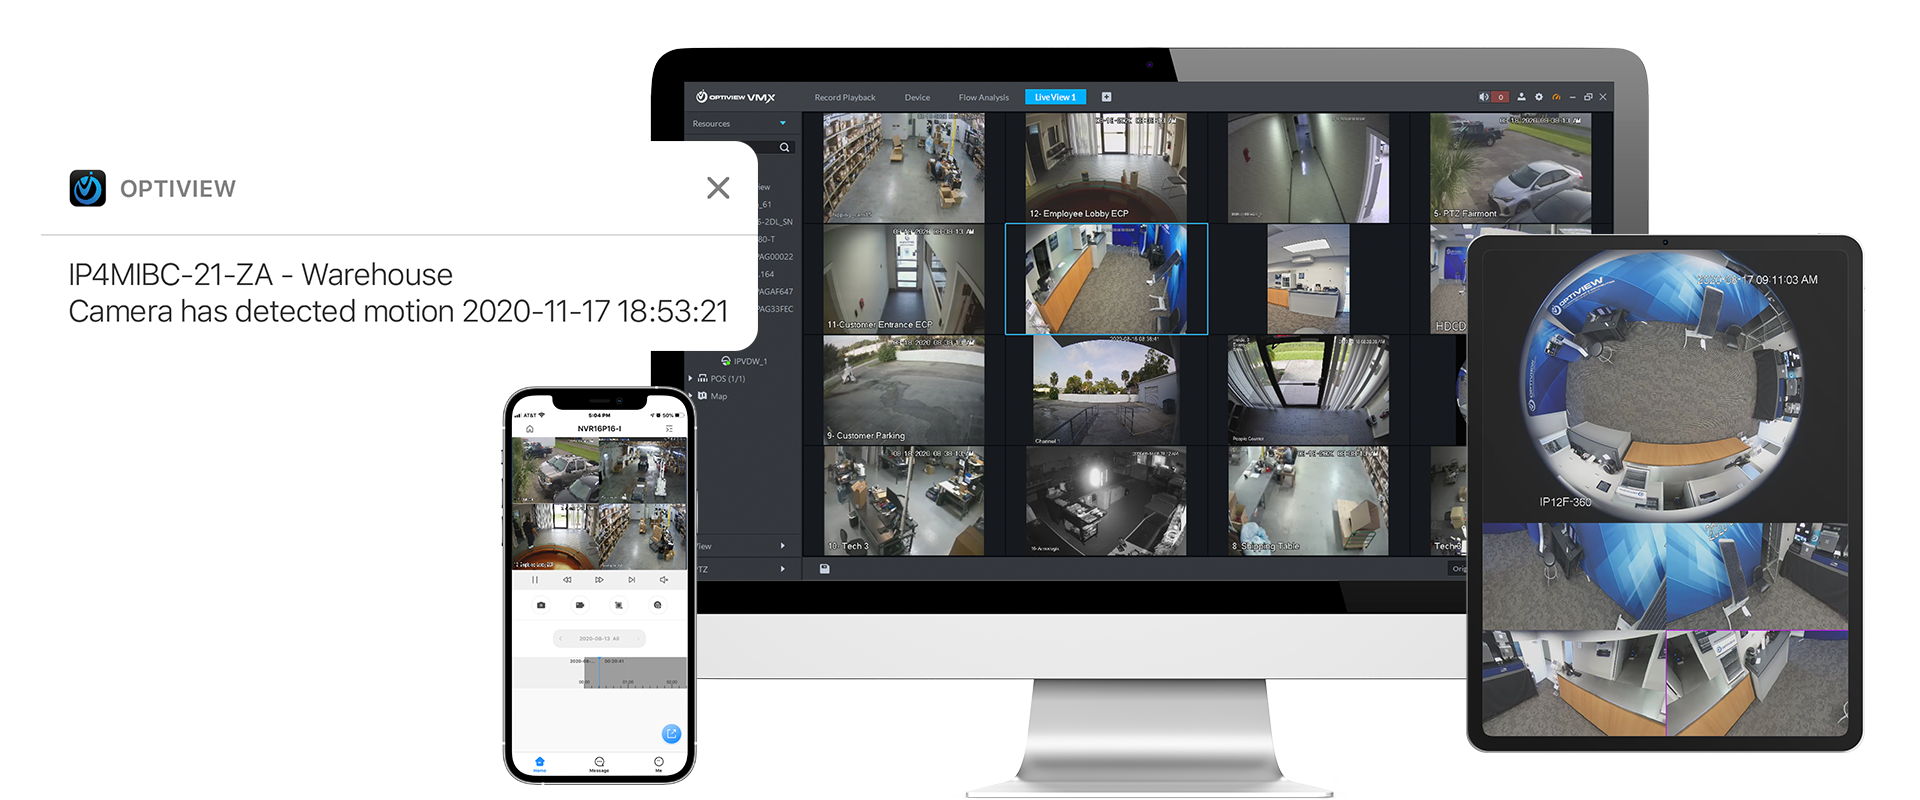 Access Anywhere with Optiview Remote Monitoring Software